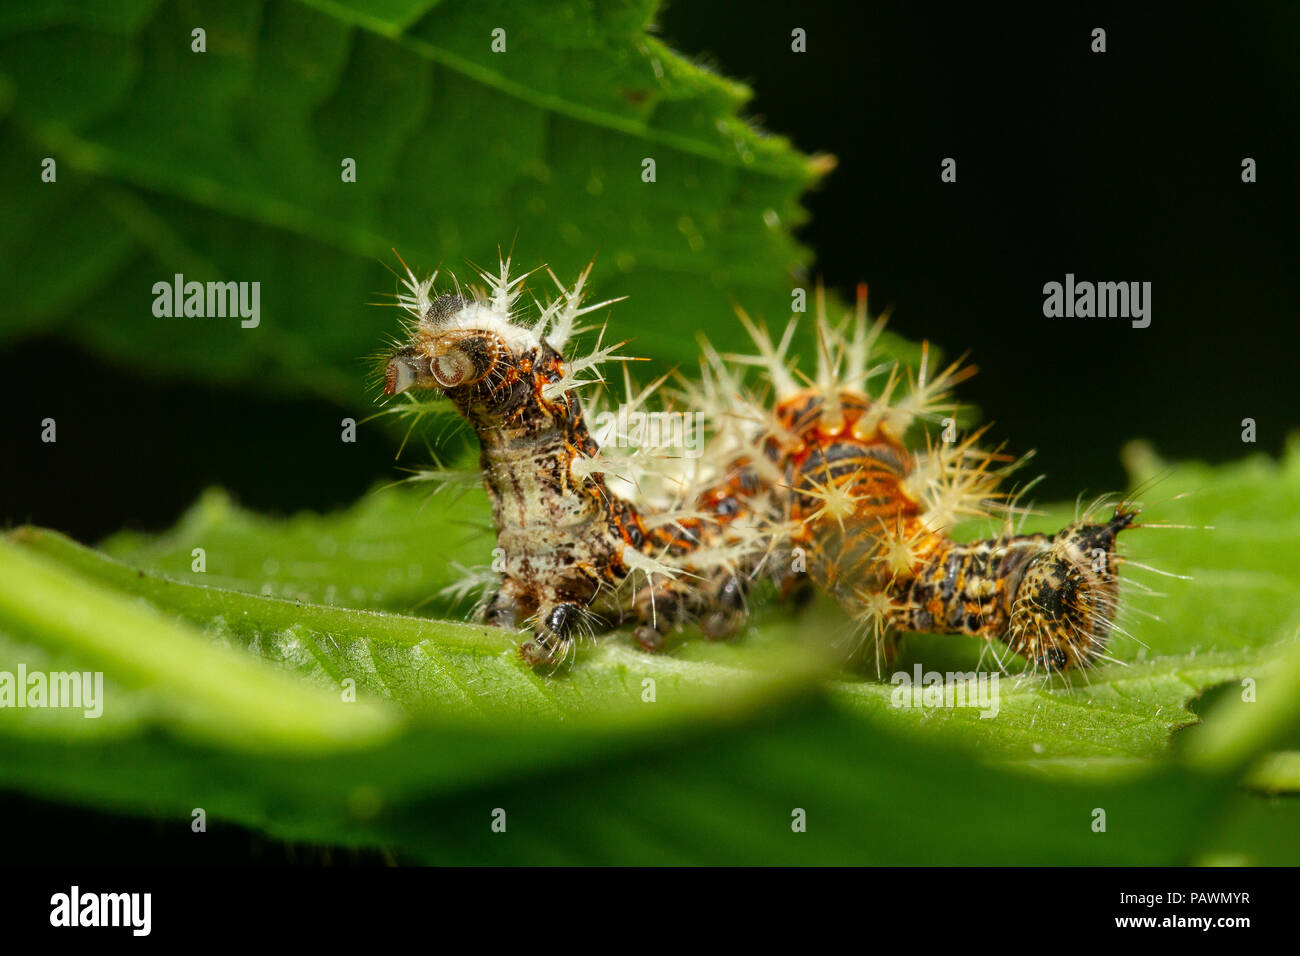 Hairy caterpillar on a leaf, macro photography - Stock Image